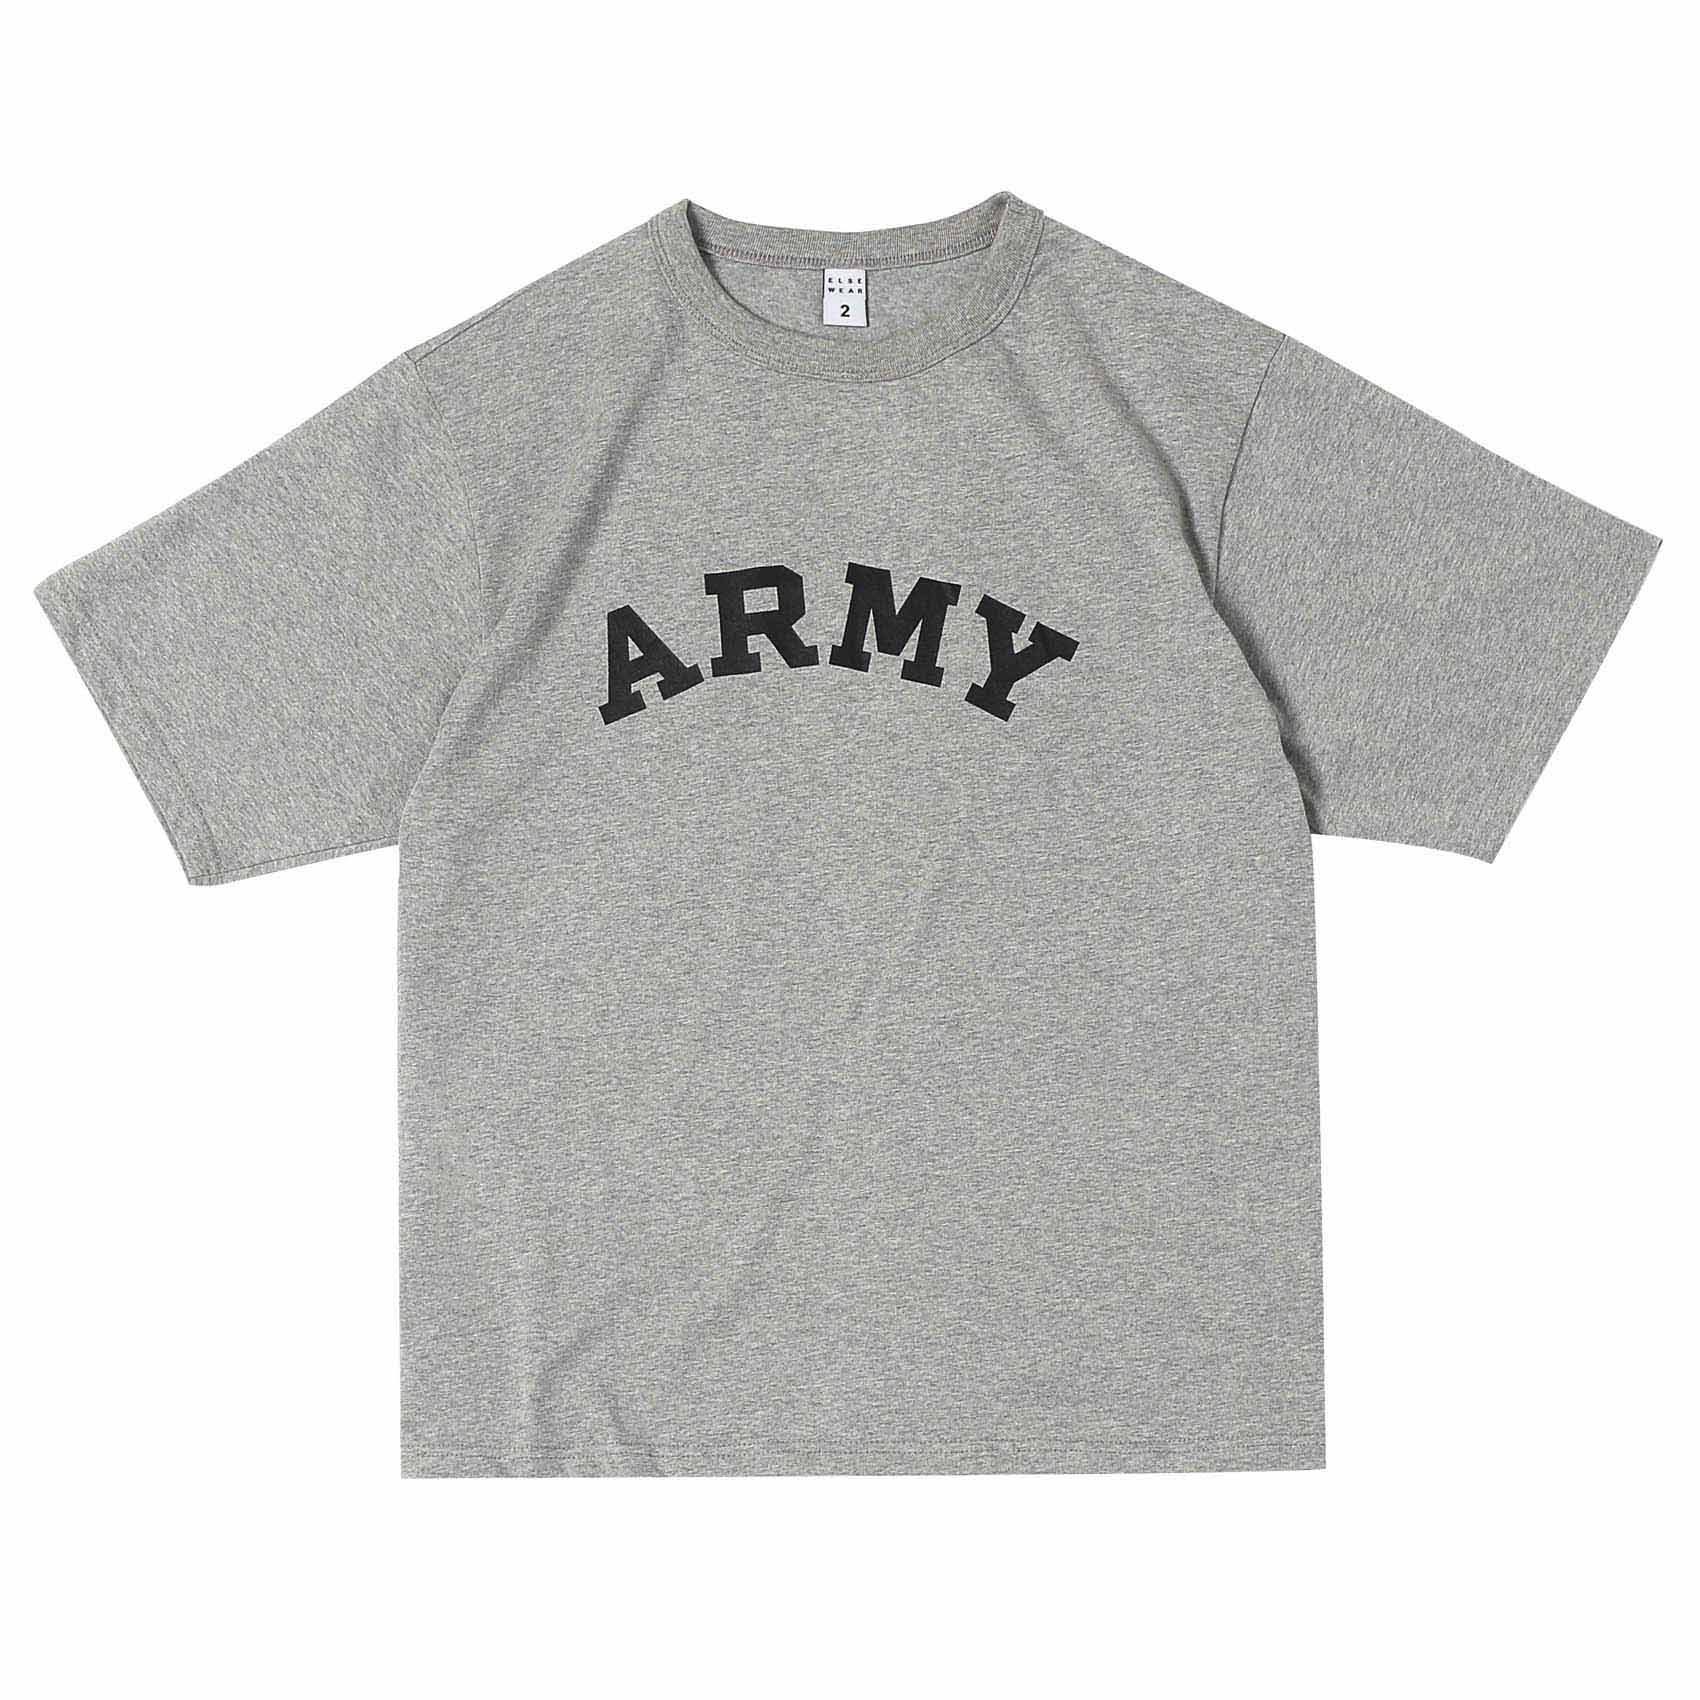 SS PRINTED TEE - ARMY